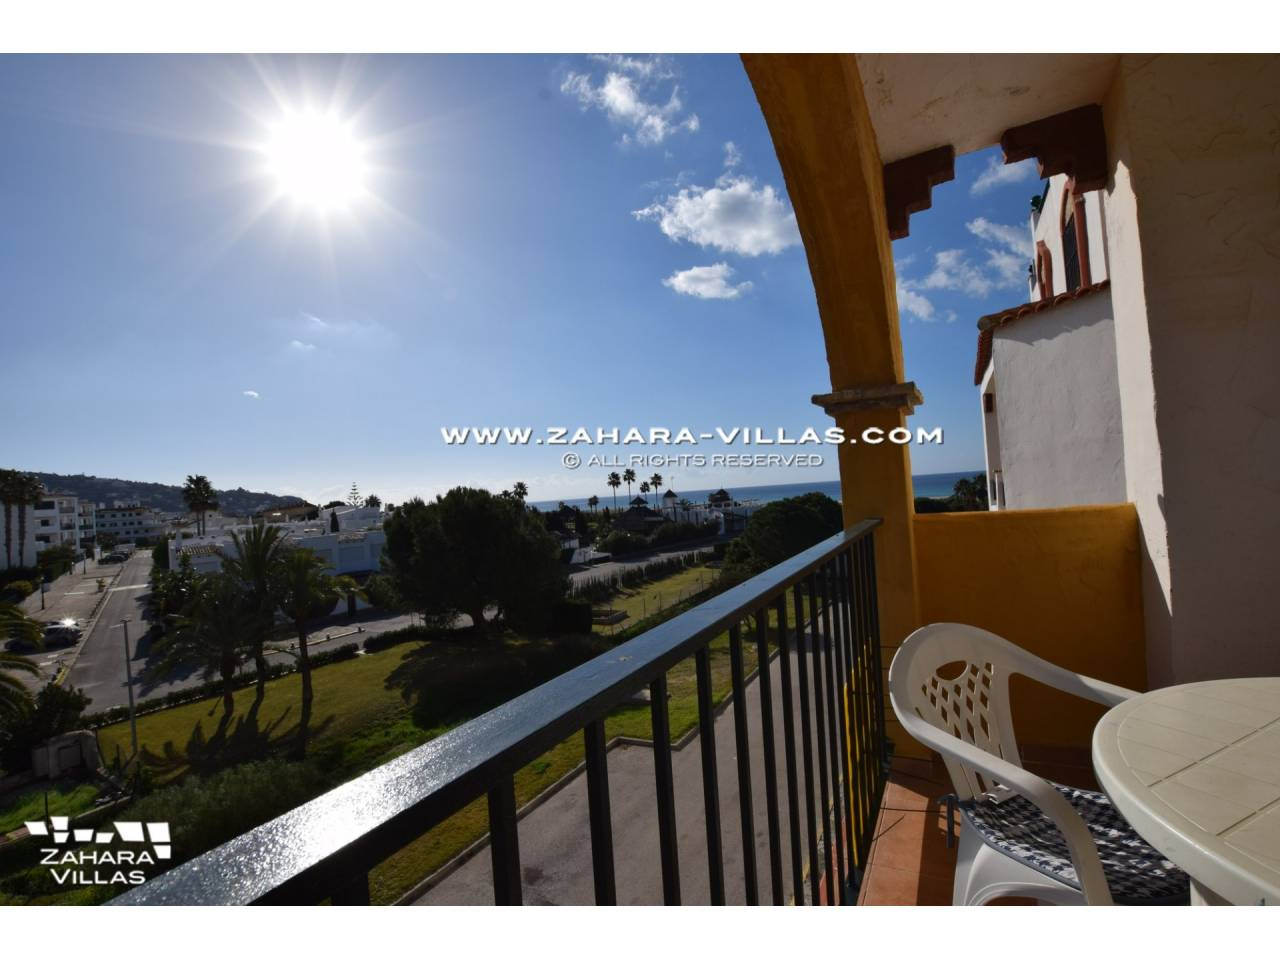 Imagen 3 de Apartment for sale in Zahara de los Atunes